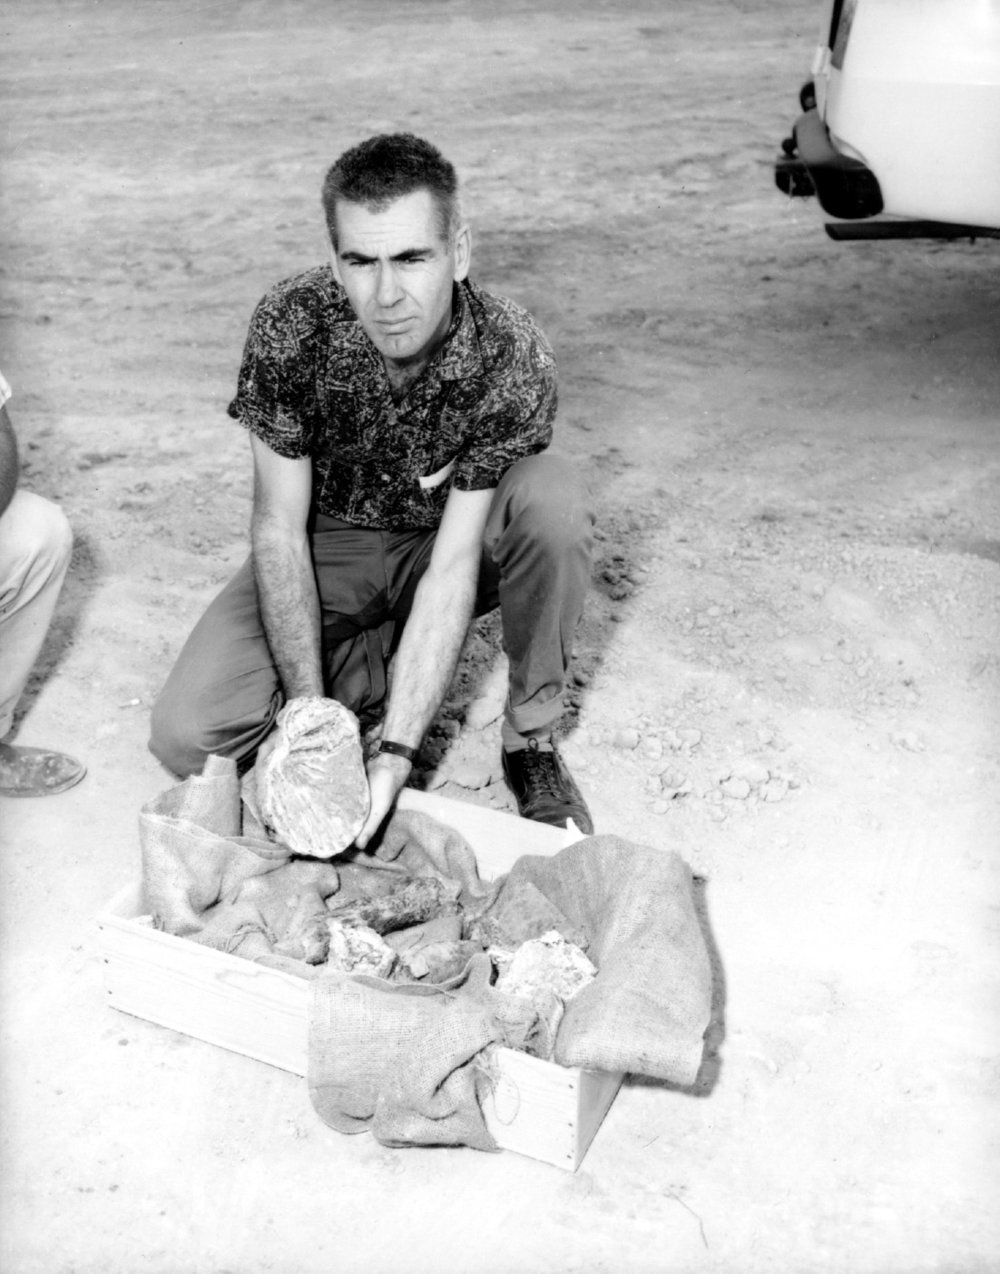 Leonard Bessom with Mammoth tooth, 1961.   Photograph by Frank Knight, courtesy of the Thousand Oaks Library.